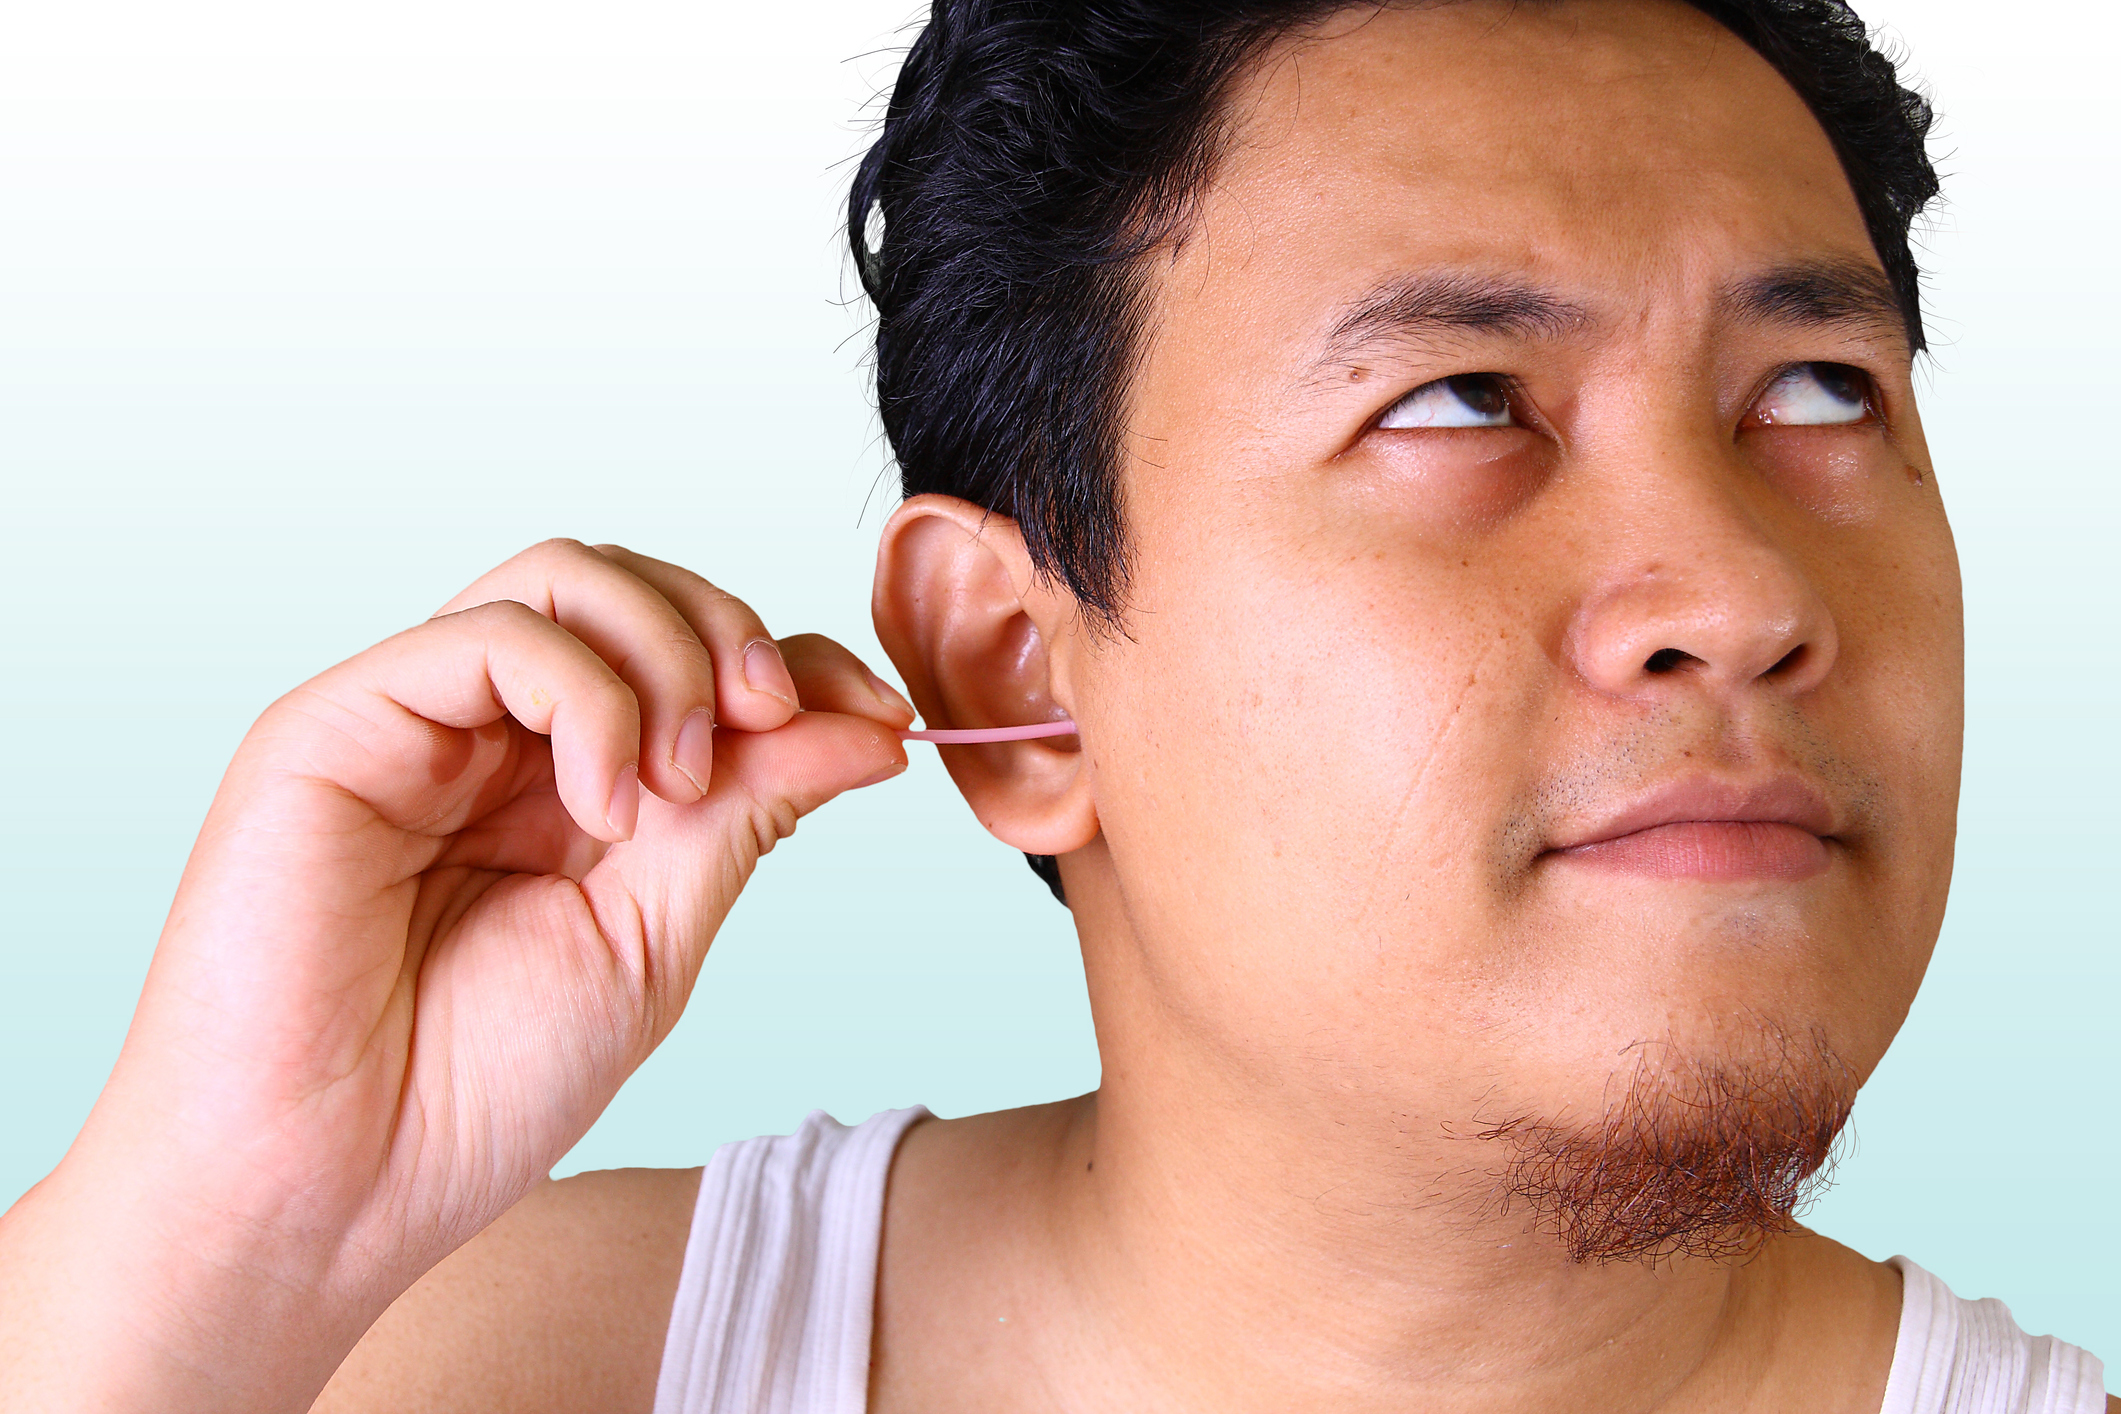 earwax reveals about your ear health